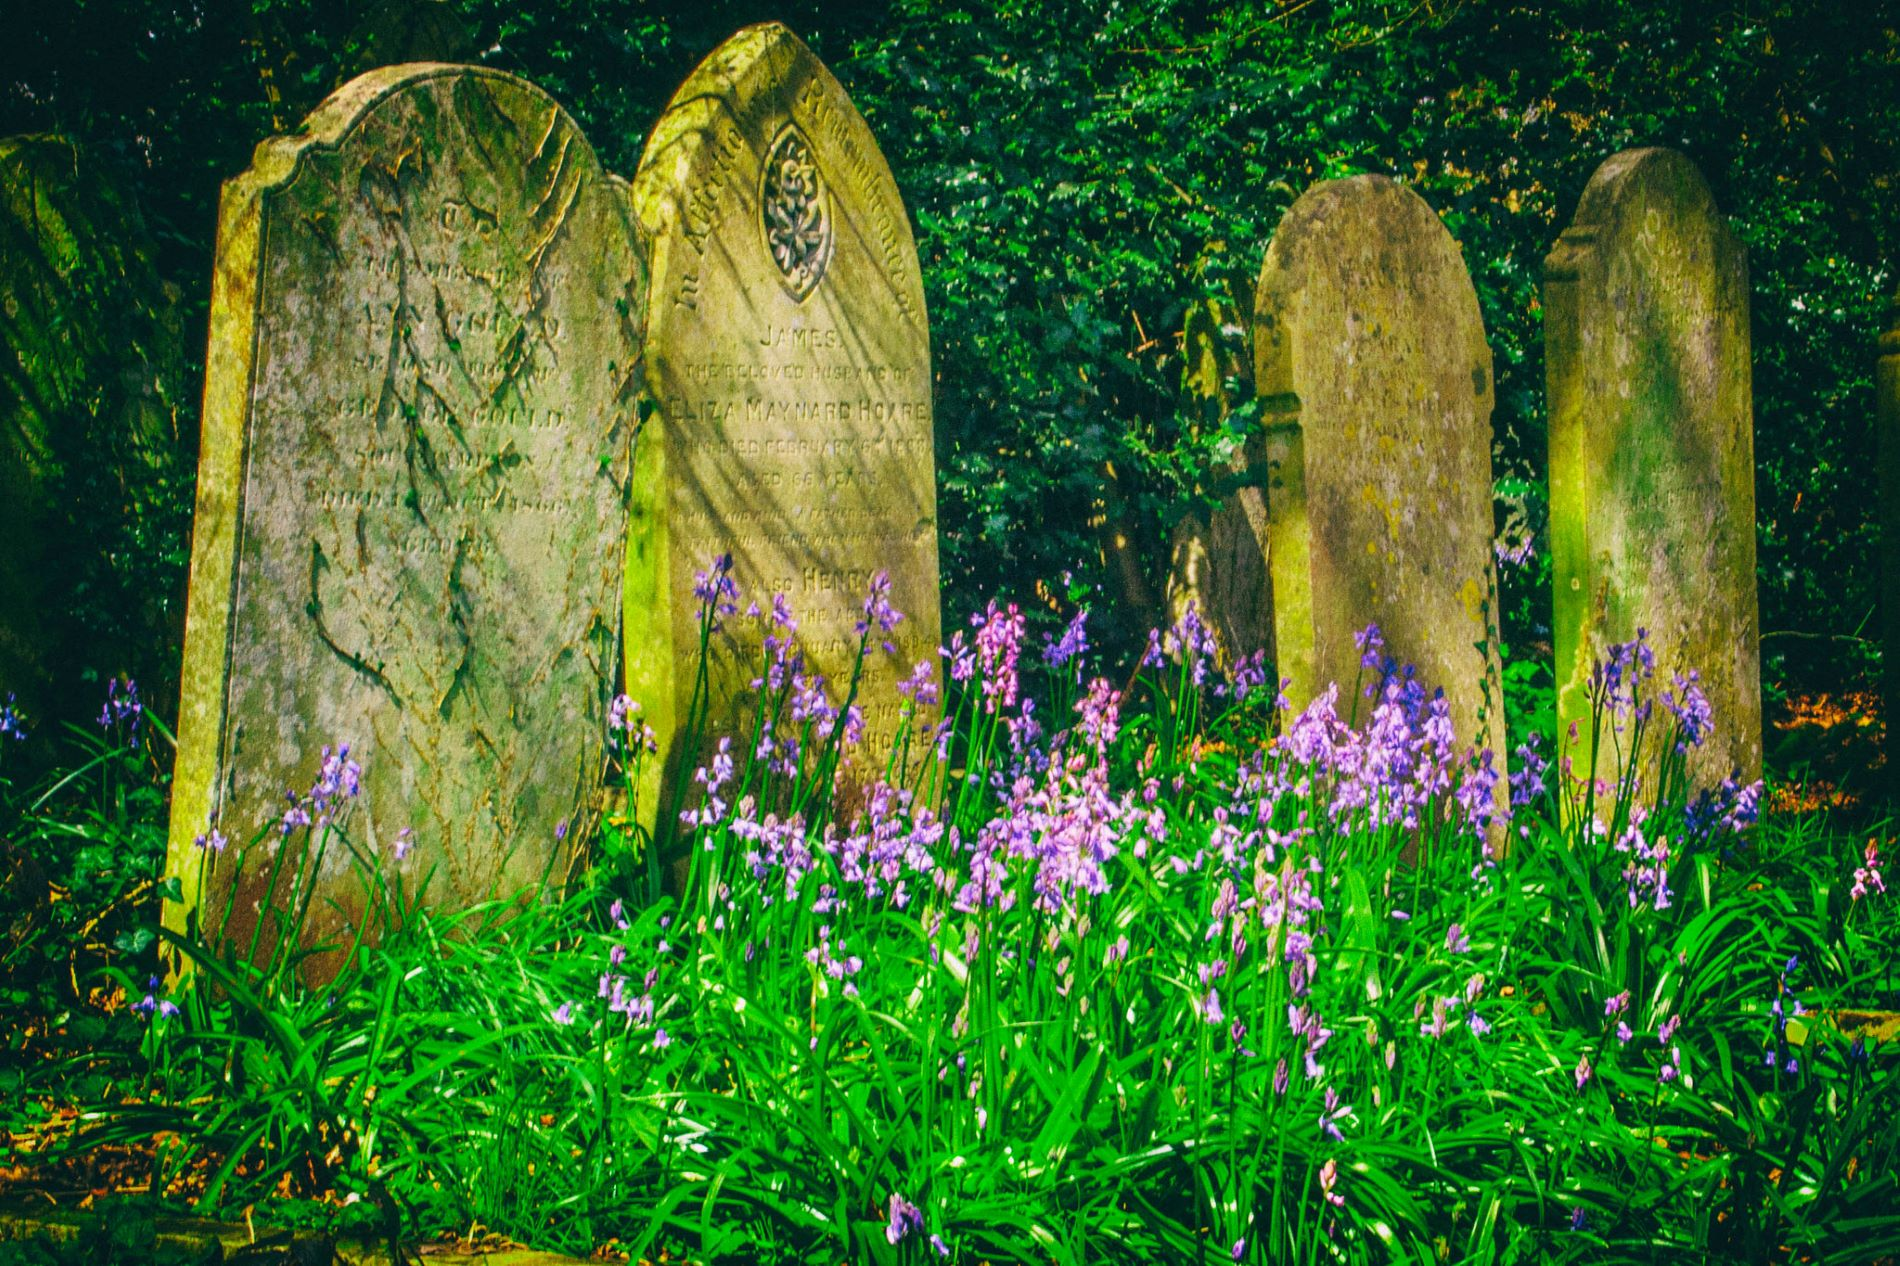 The Old Headstones by Patrick Deeley